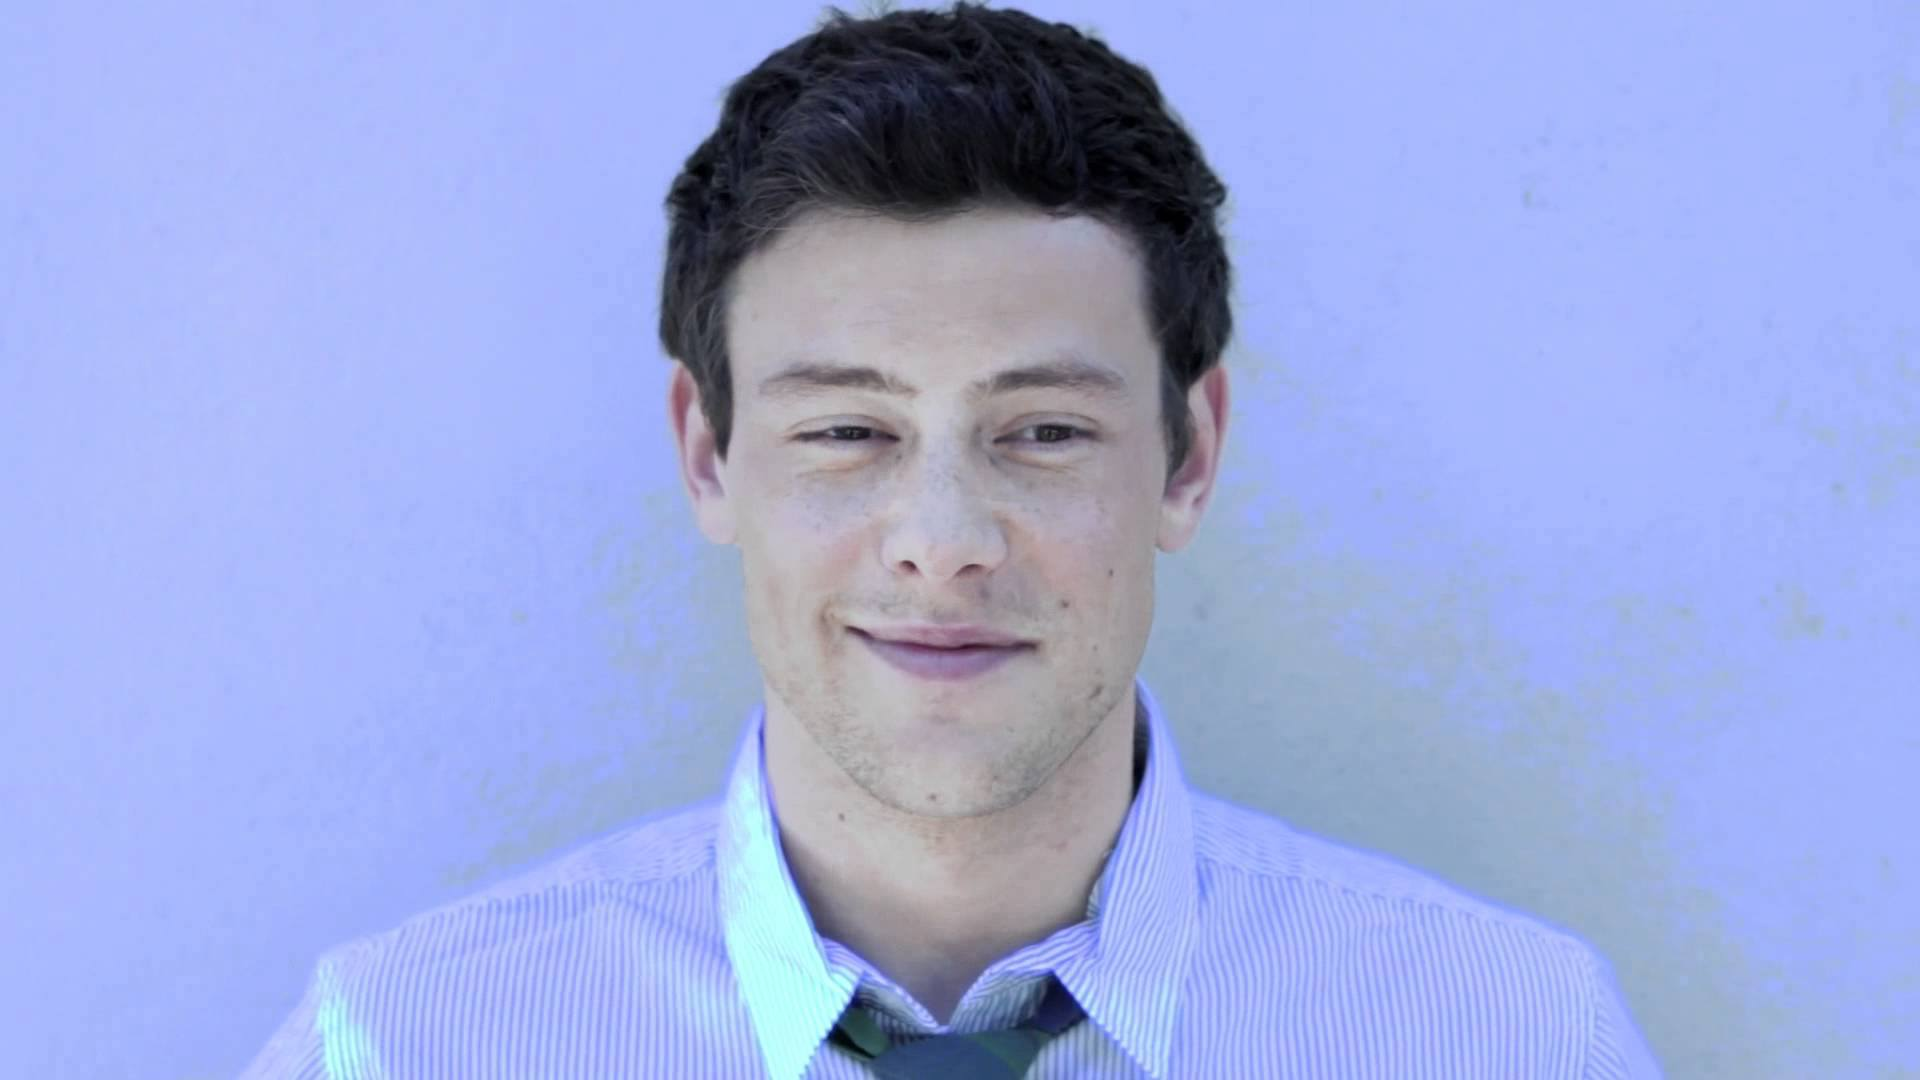 ... Cory Monteith Wallpaper ...